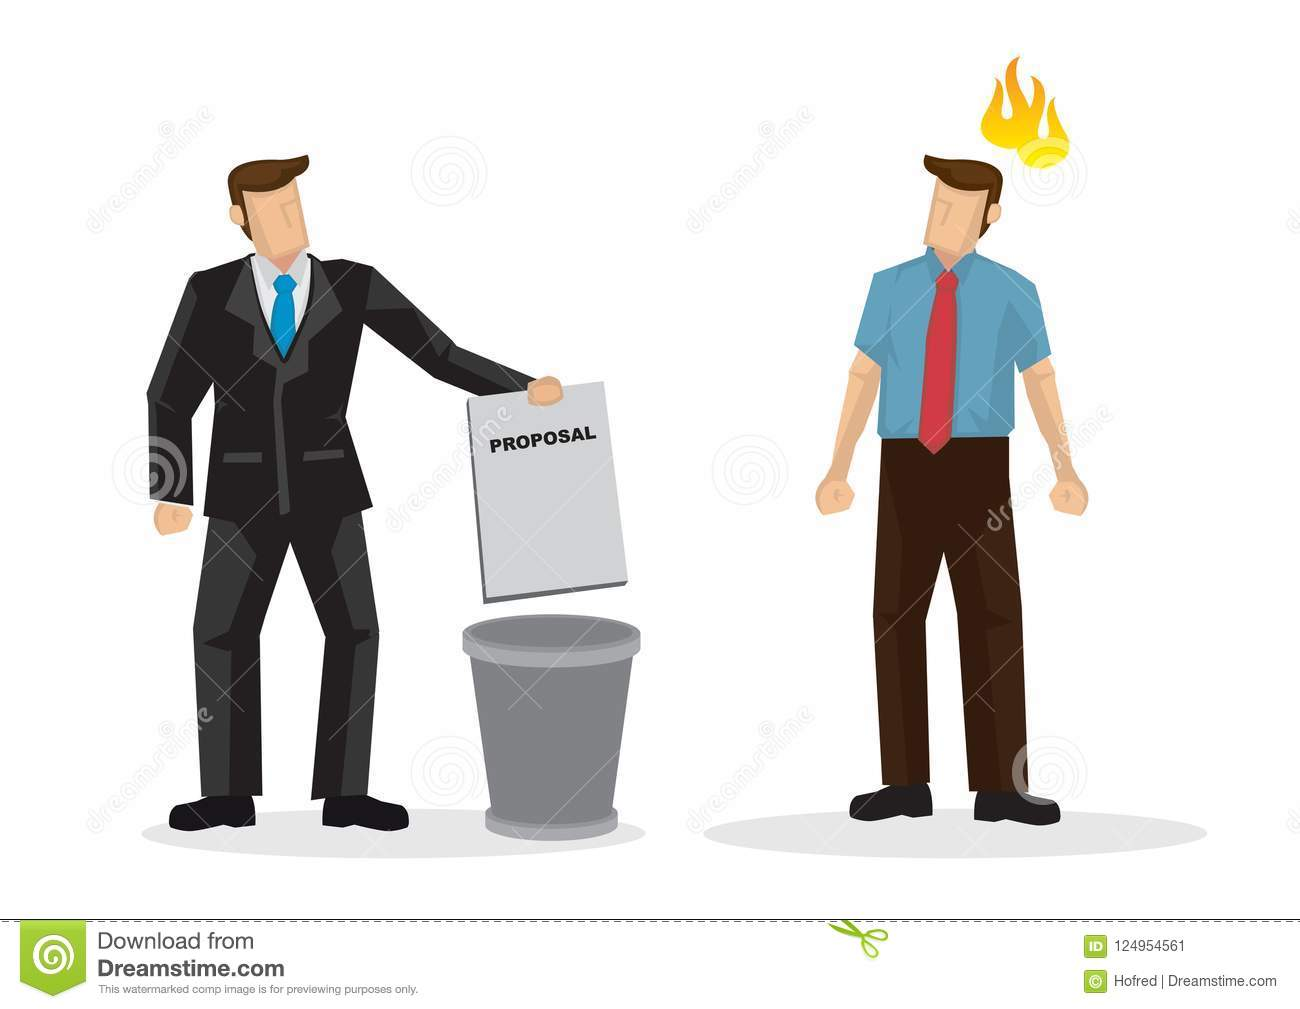 businessman throwing idea proposal or agreement into the trash